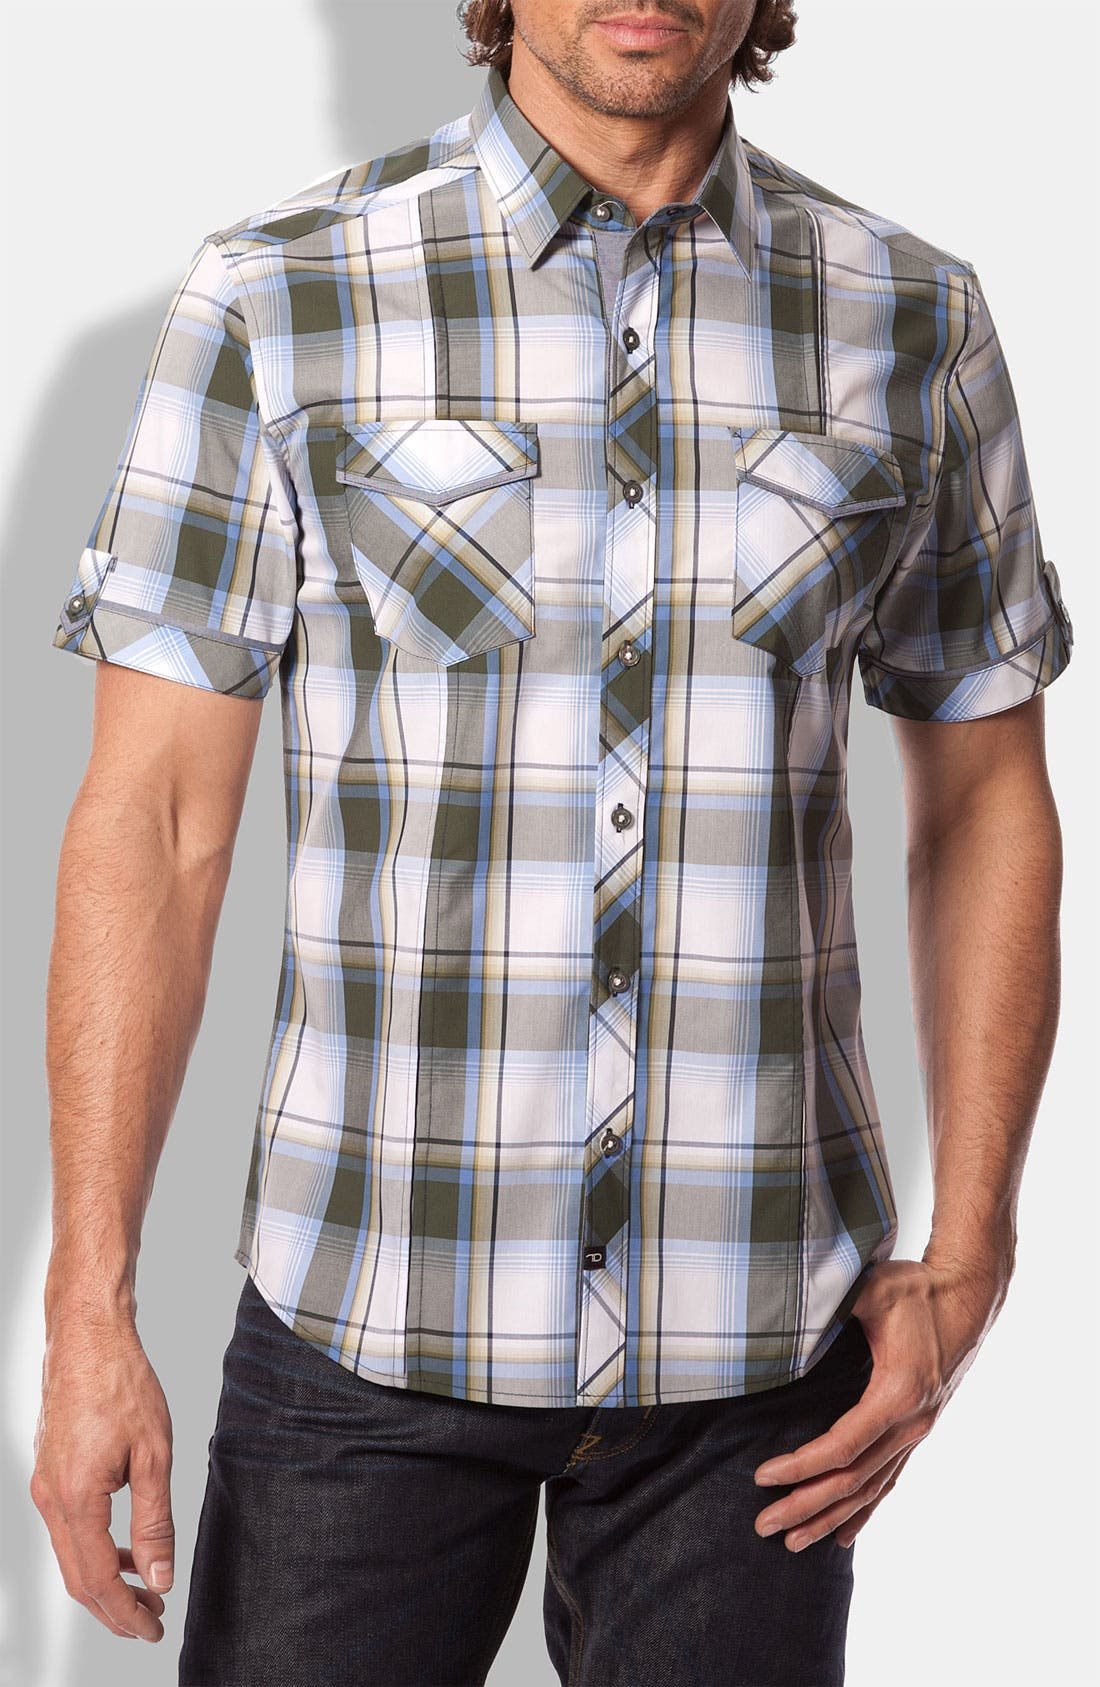 Alternate Image 1 Selected - 7 Diamonds 'Come Here My Dear' Plaid Woven Short Sleeve Shirt